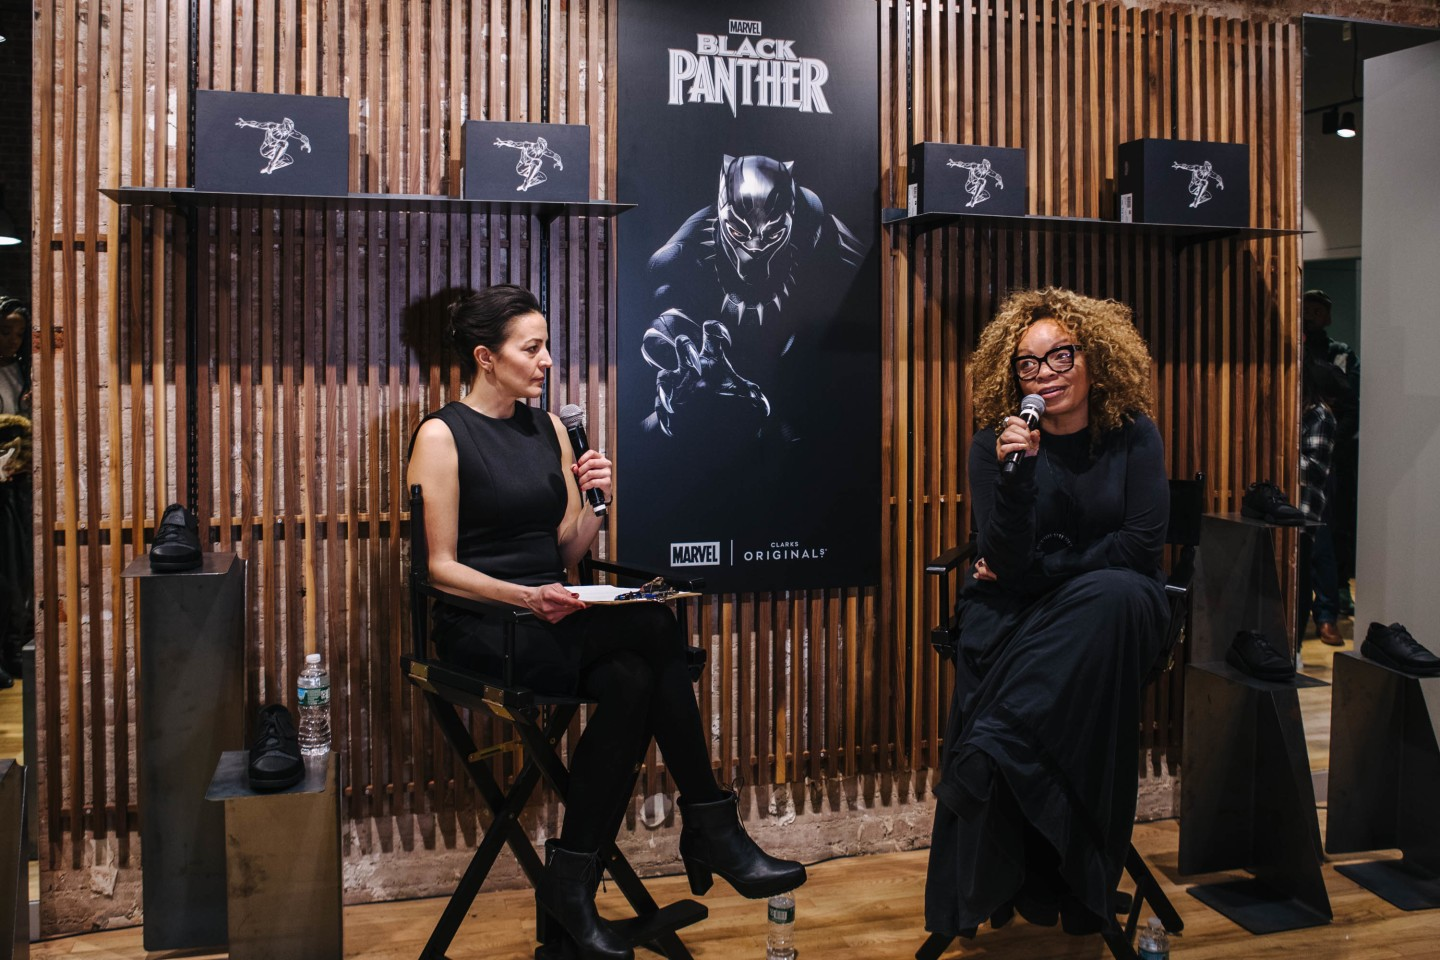 Clarks brought out Black Panther's costume designer to celebrate their new sneaker collab